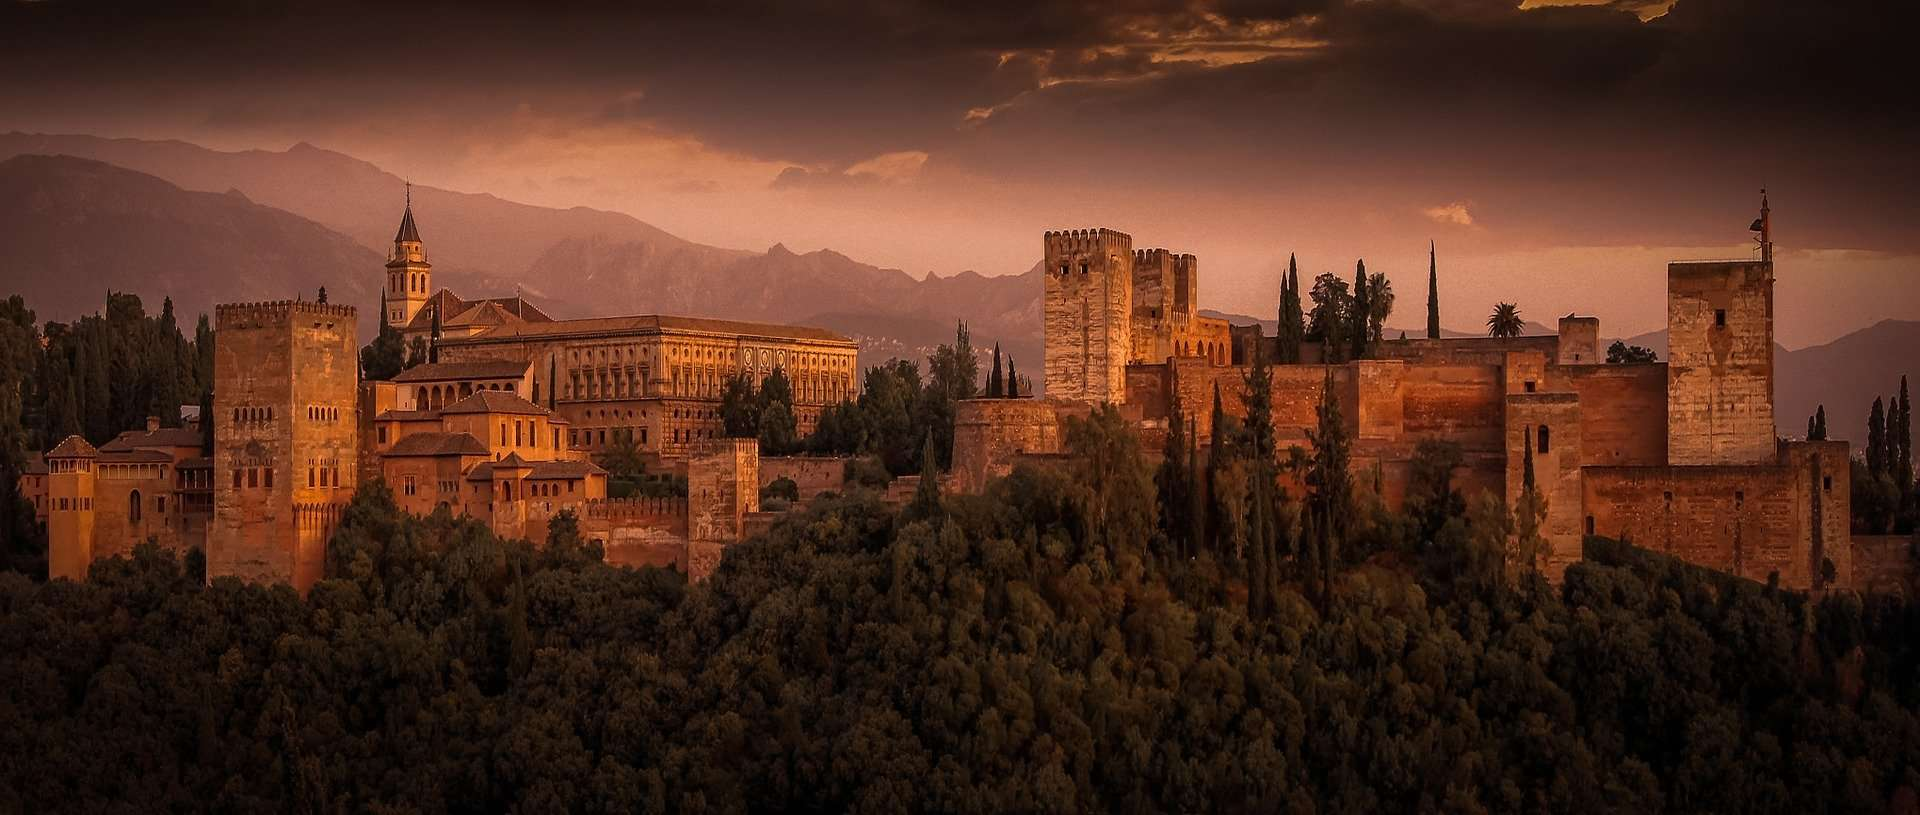 Spain - Andalusia - Alhambra - Landscape view